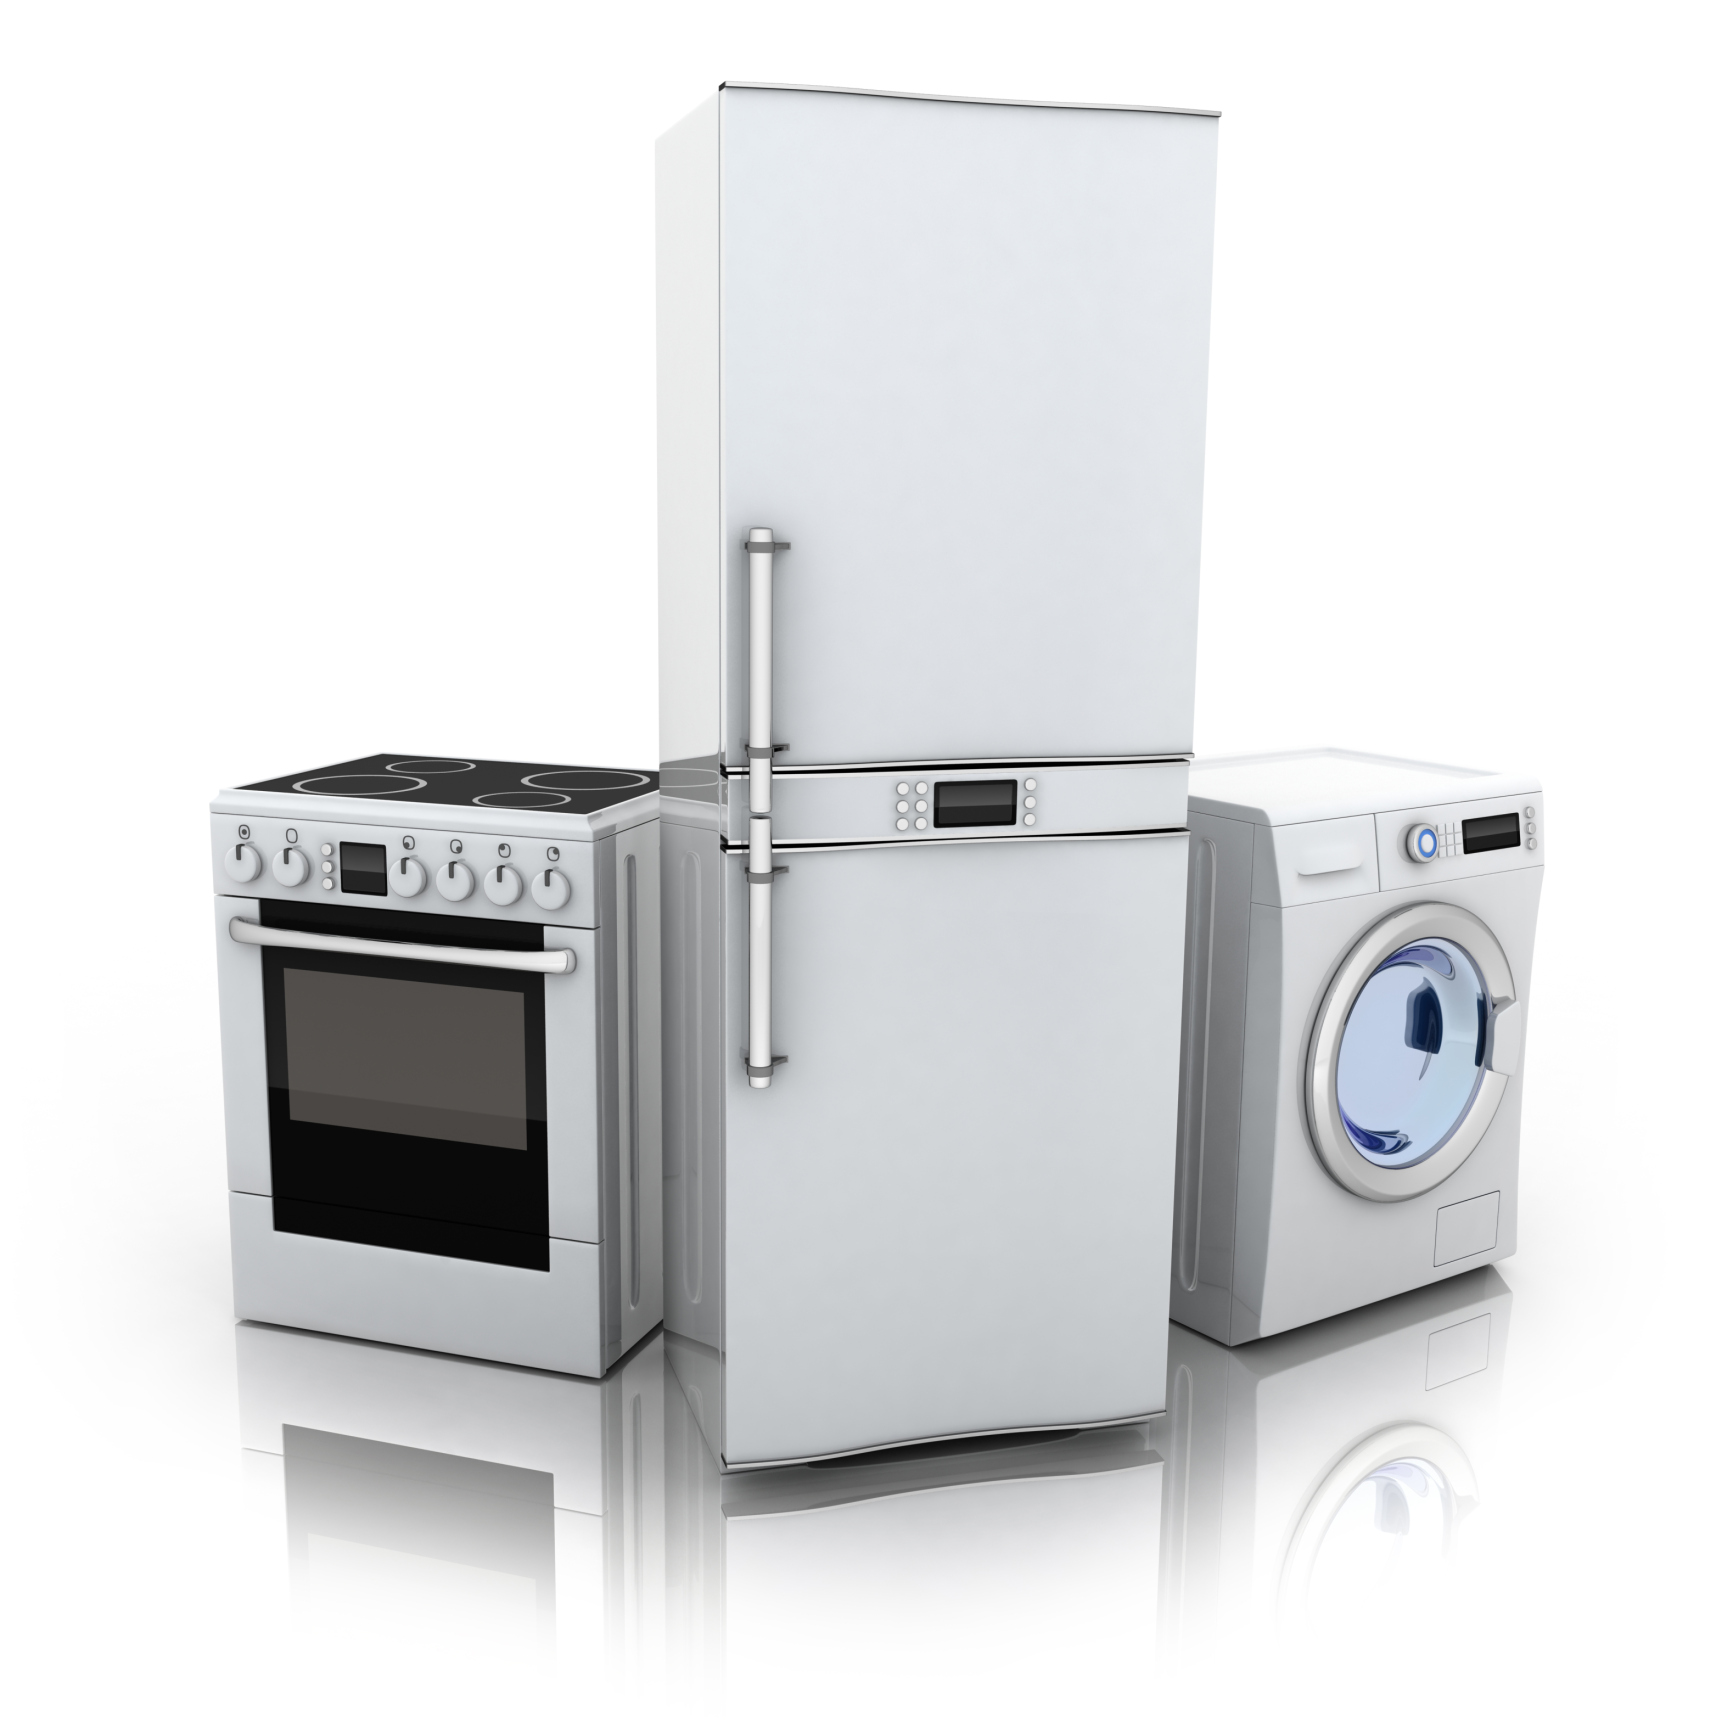 Examples of Large Appliances to be Recycled